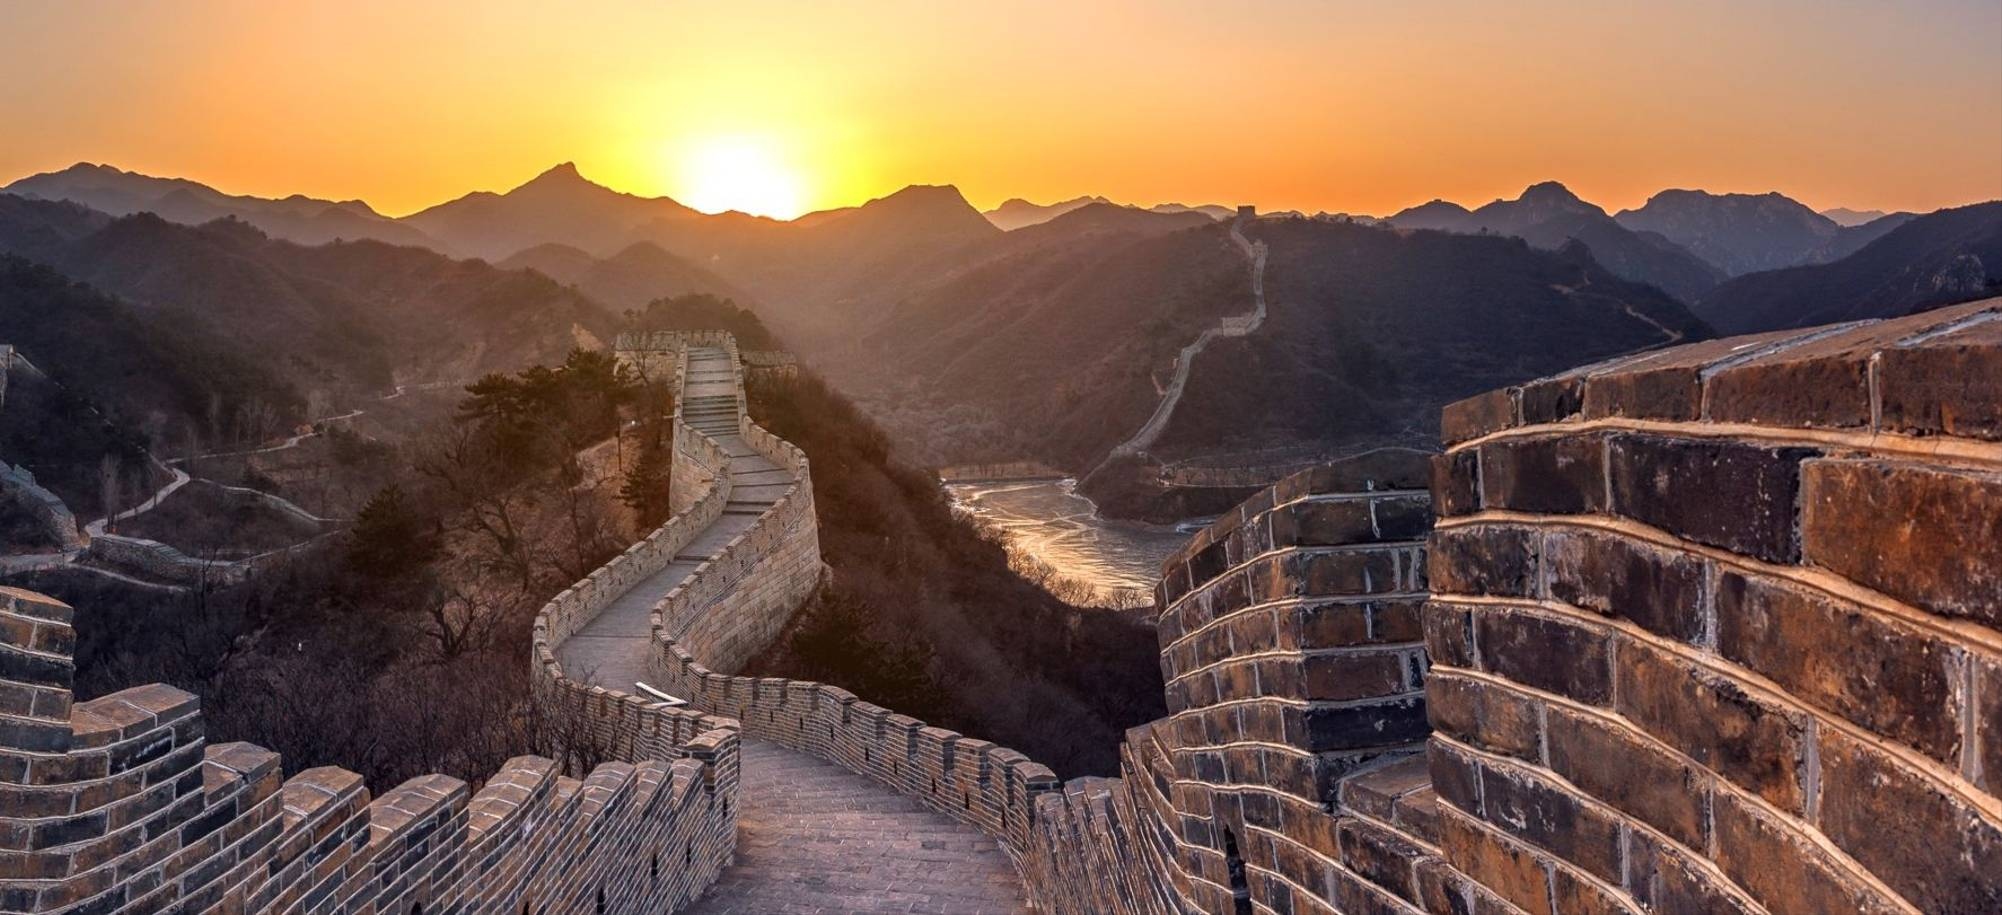 17 Day   Beijing Great Wall Of China   Itinerary Desktop